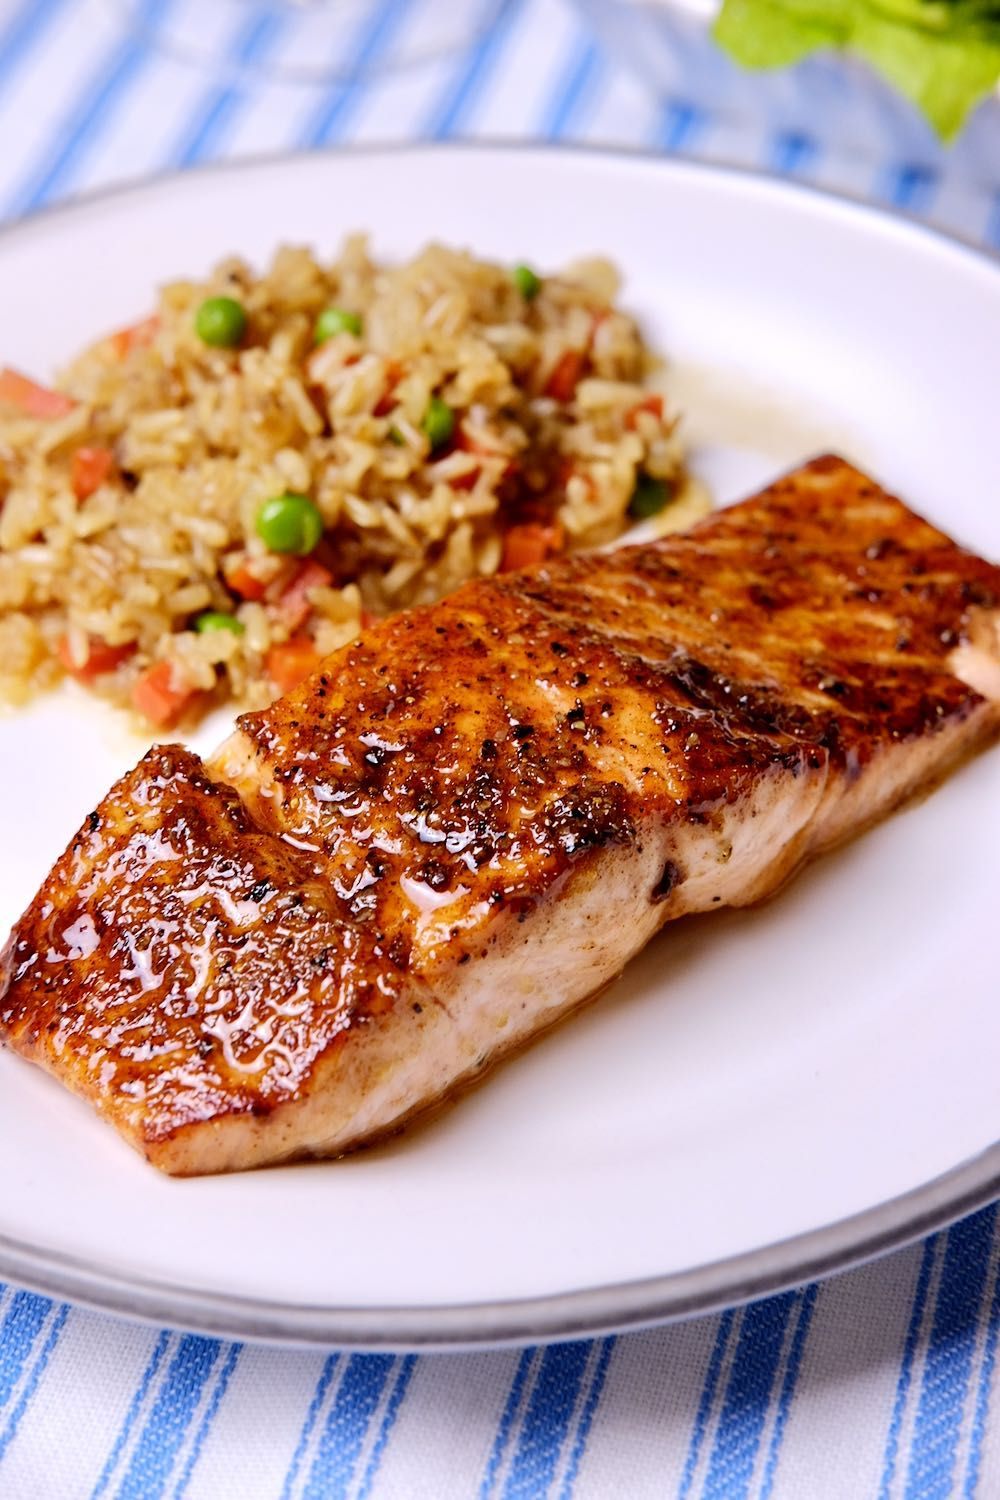 Make this easy bbq pan-seared salmon in under 30 minutes. This recipe starts with a simple rub sprinkled over the salmon. This dish brings the flavors of summertime barbecue to the table year round. #miascucina #salmonrecipes #easydinnerrecipes #salmonrecipeshealthy #salmonrecipesbaked #easyfishrecipes #healthydinnerrecipes #bakedfishrecipes #lowcaloriemeals #wwfreestylerecipes #smartpointrecipes #barbecuefishrecipe